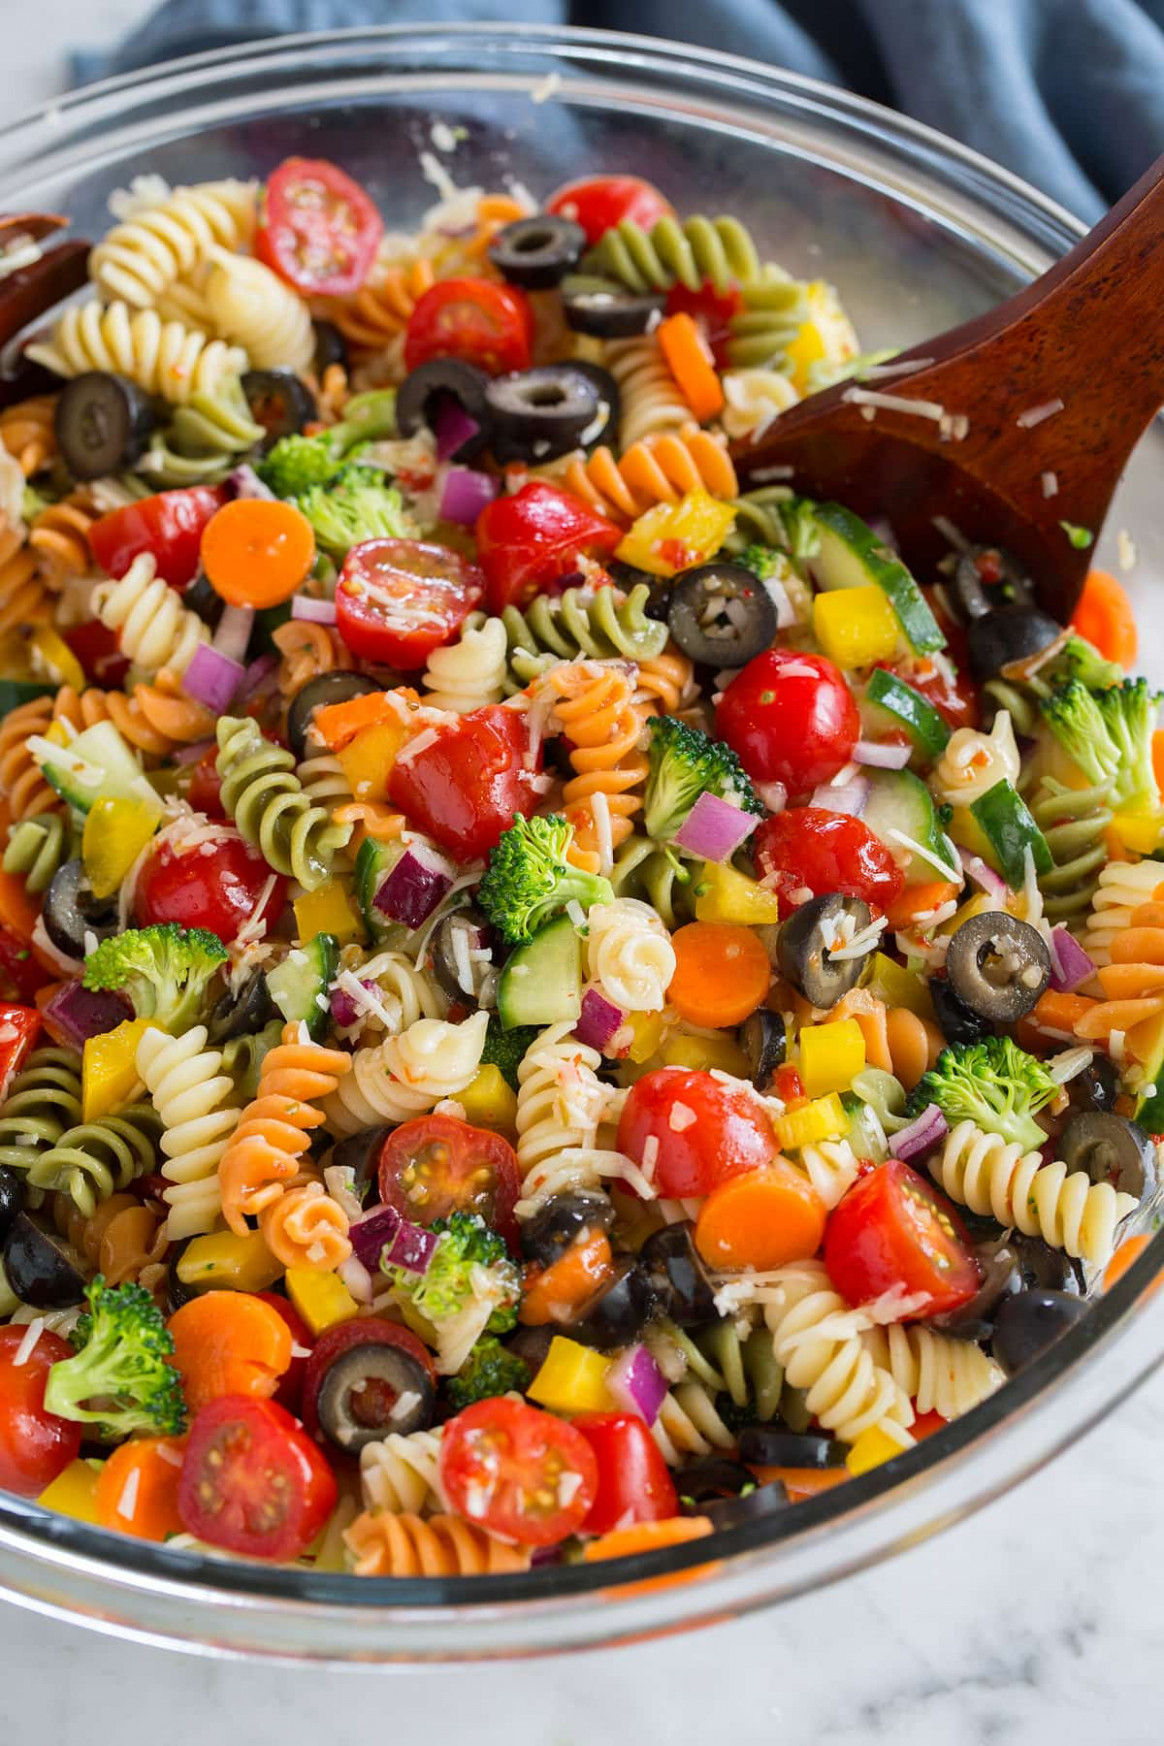 Easy Pasta Salad Recipe (The Best!) - Cooking Classy - Recipes Of Salads Vegetarian